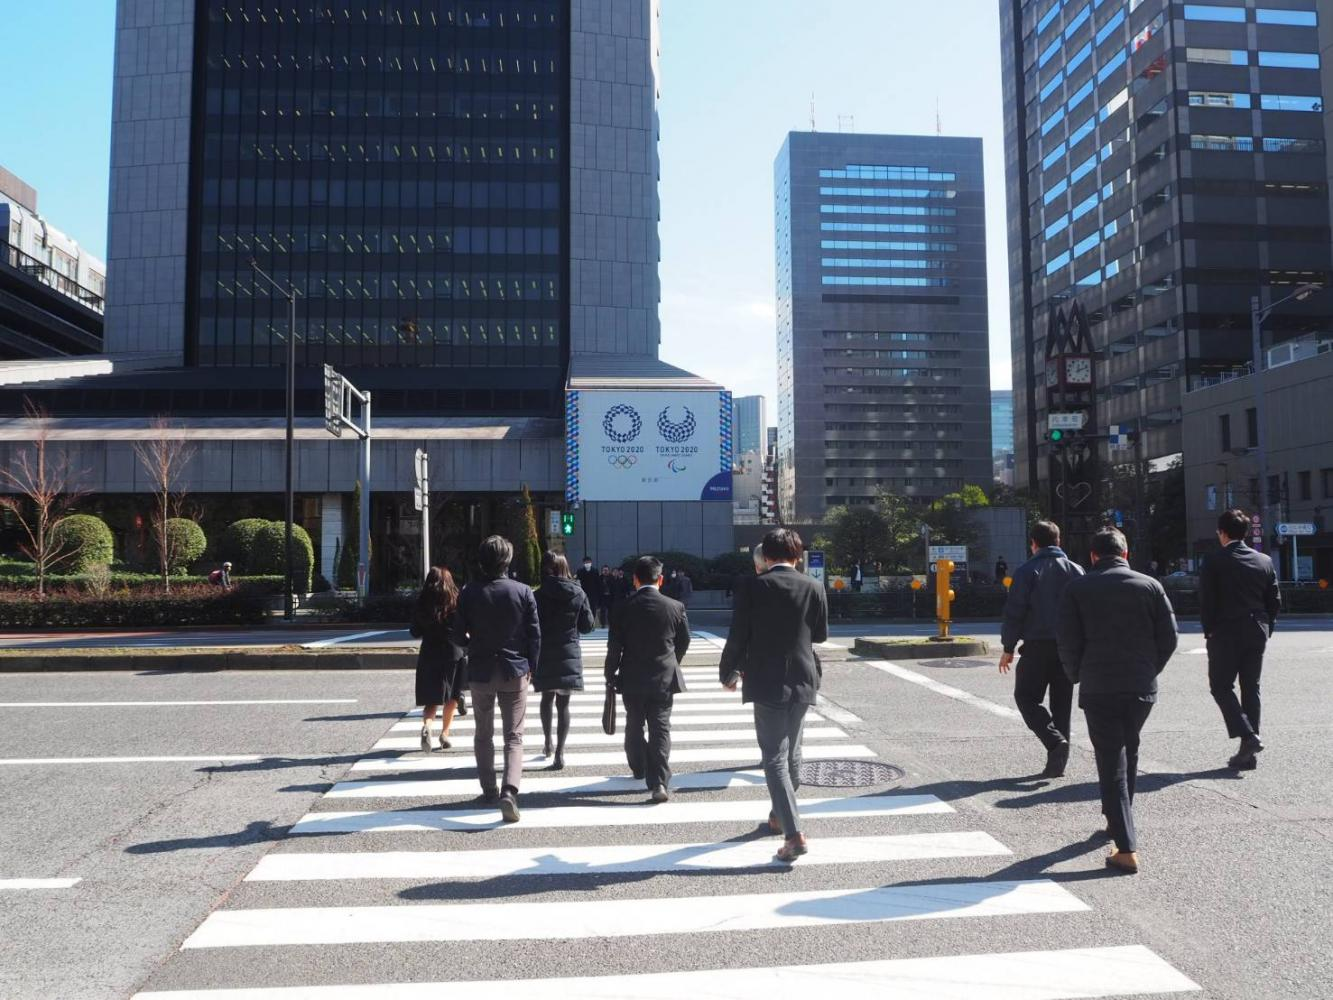 A billboard in Hibiya, Tokyo promotes the Olympic and Paralympic Games this summer in Japan.